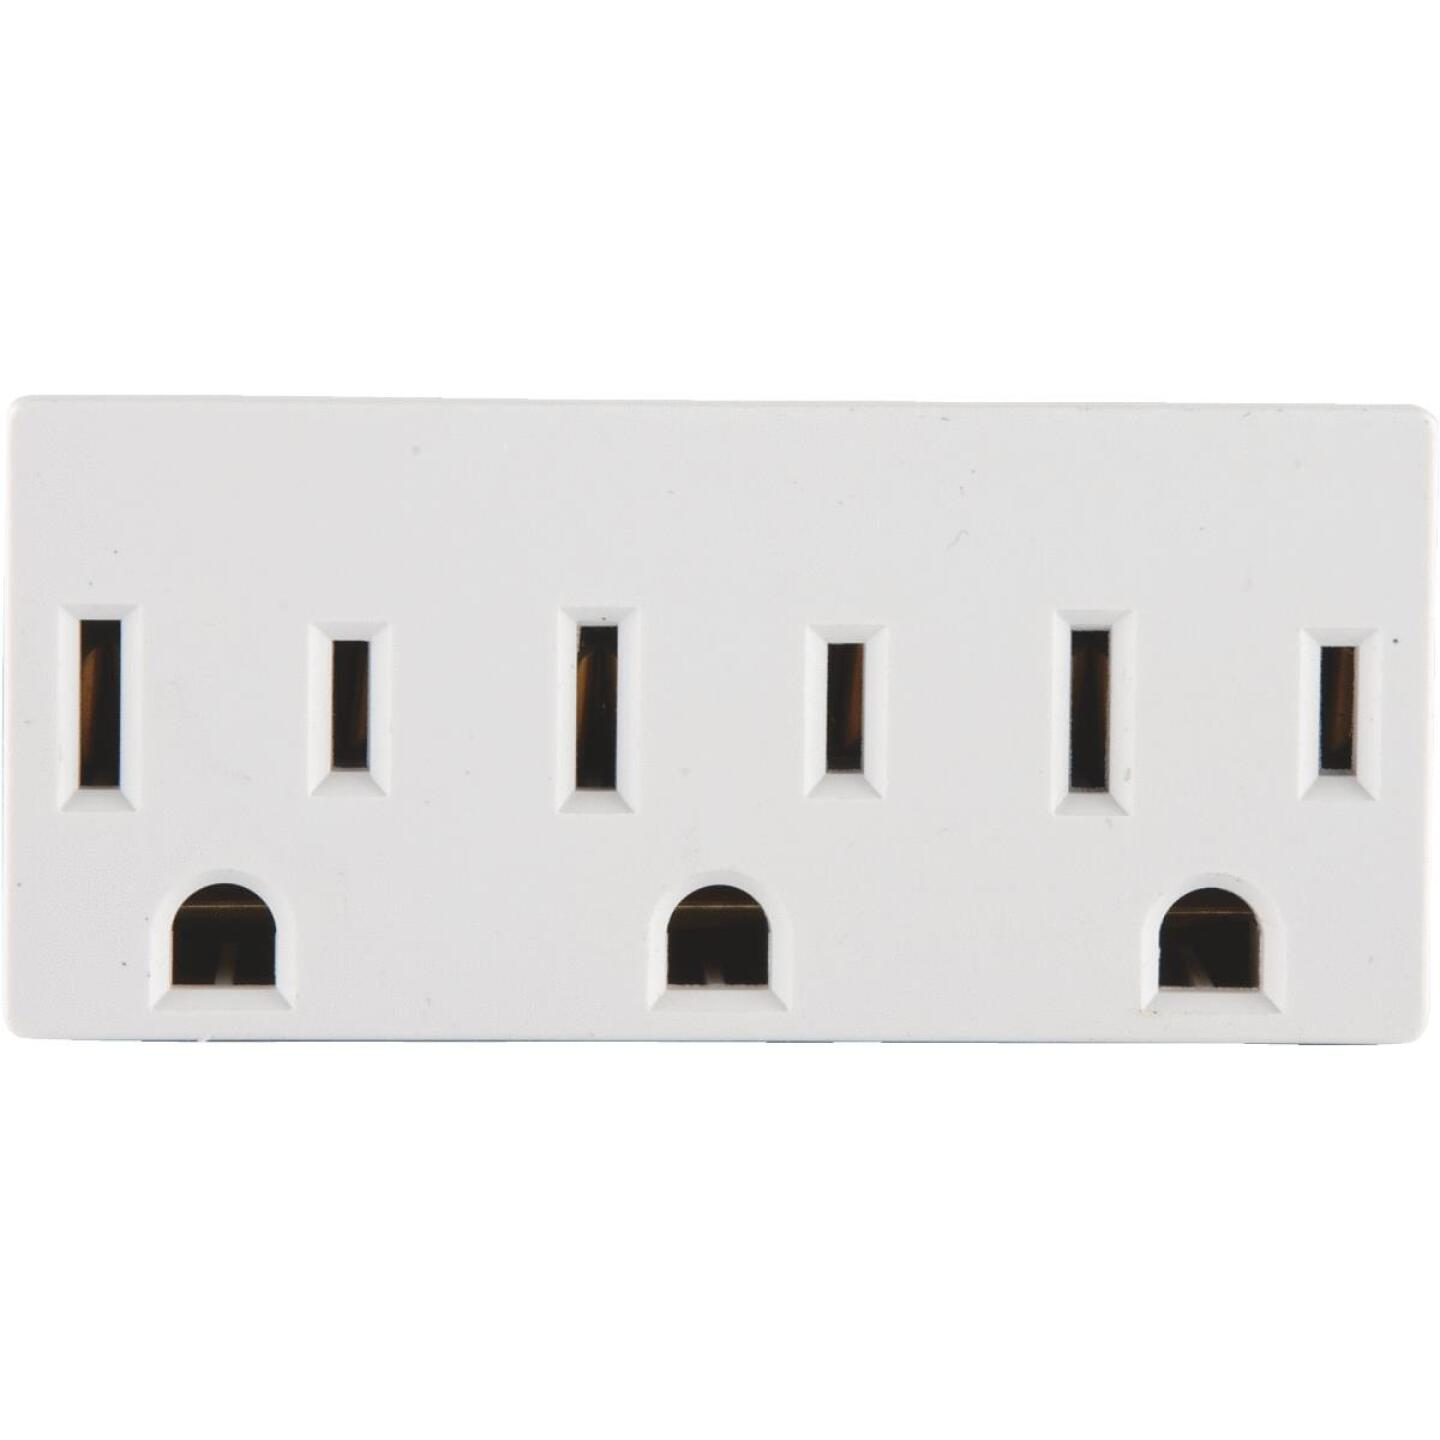 Leviton White 15A 3-Outlet Tap Image 2